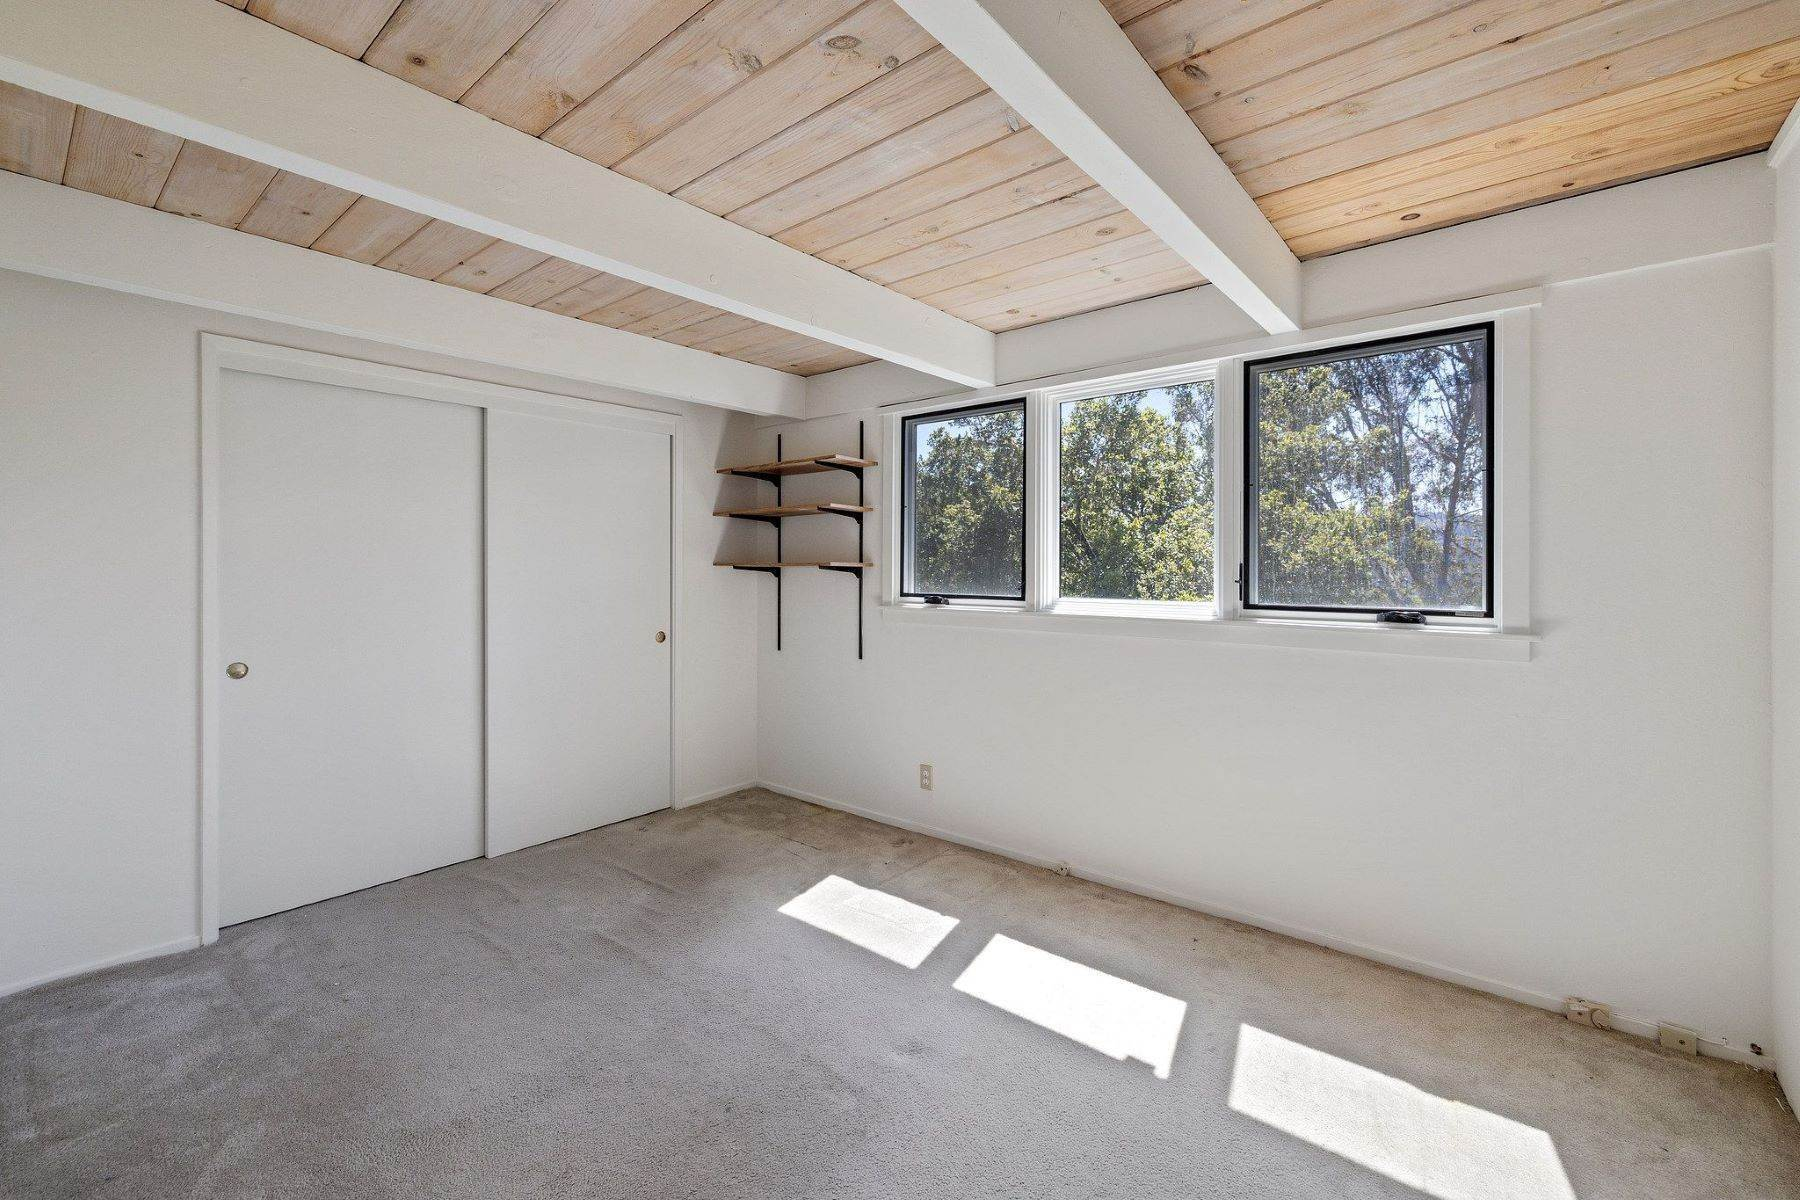 22. Single Family Homes for Sale at Adorable Fairfax Cottage 148 Ridgeway Avenue Fairfax, California 94930 United States